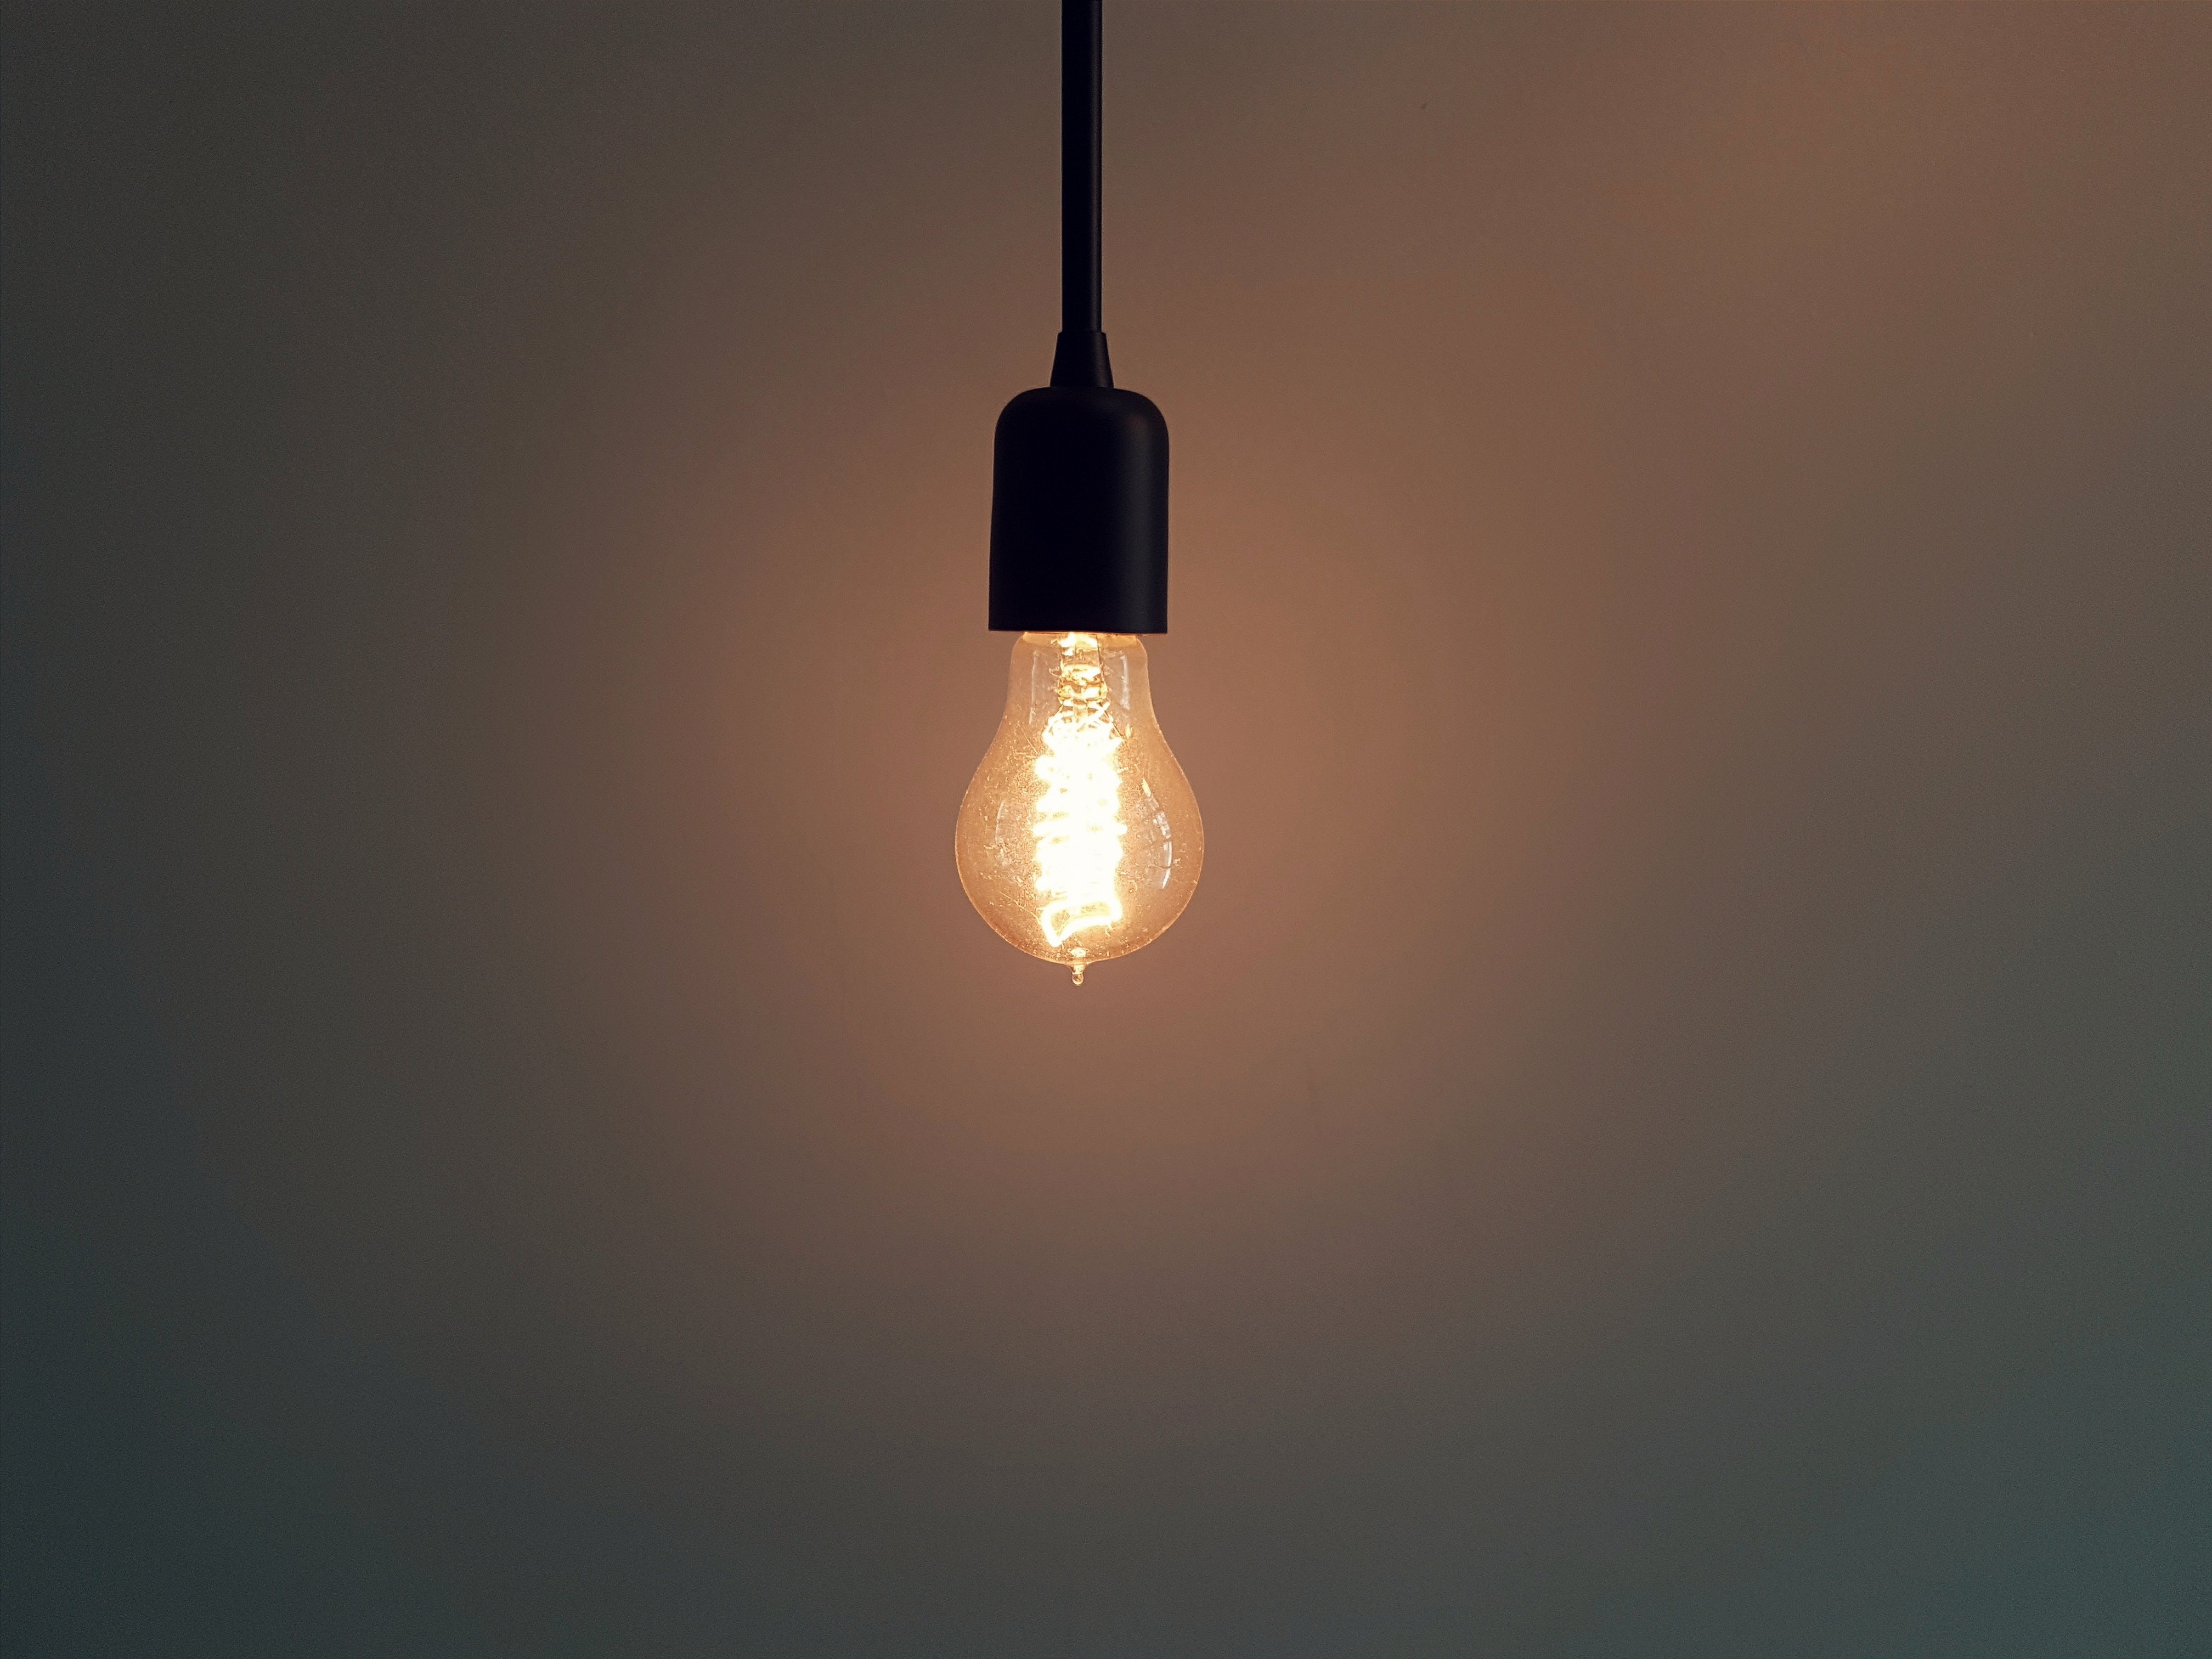 light bulb hanging from cable